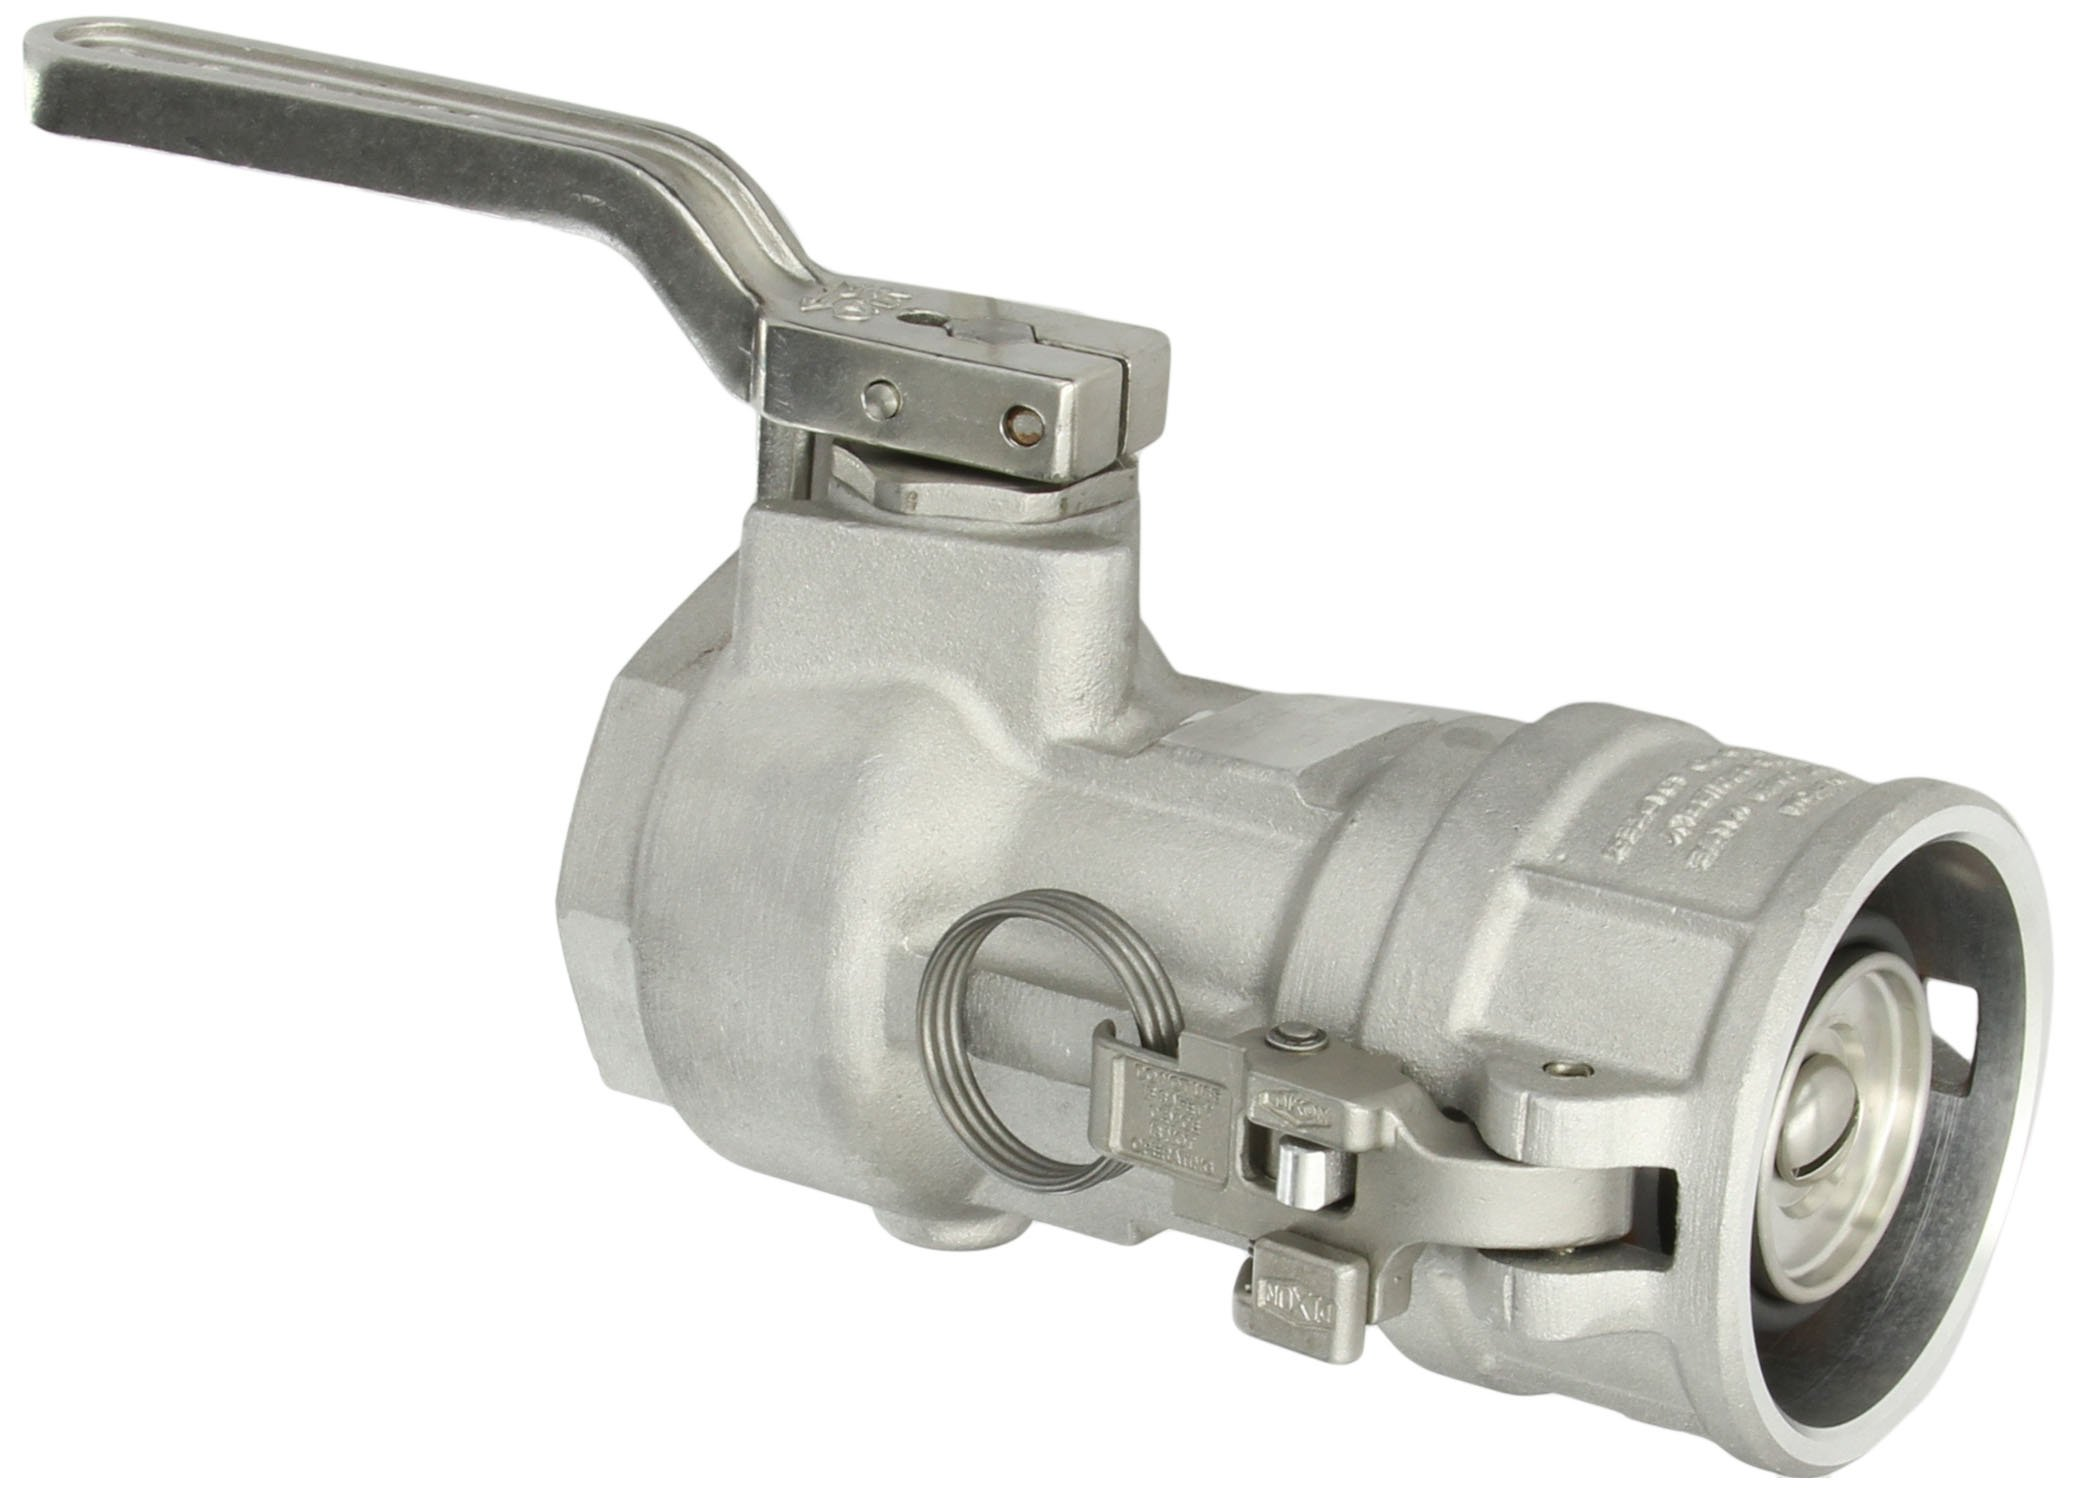 Dixon DBC61-300 Aluminum Dry Break Cam and Groove Dry Disconnect Hose Fitting, 4'' Socket x 3'' NPT Female